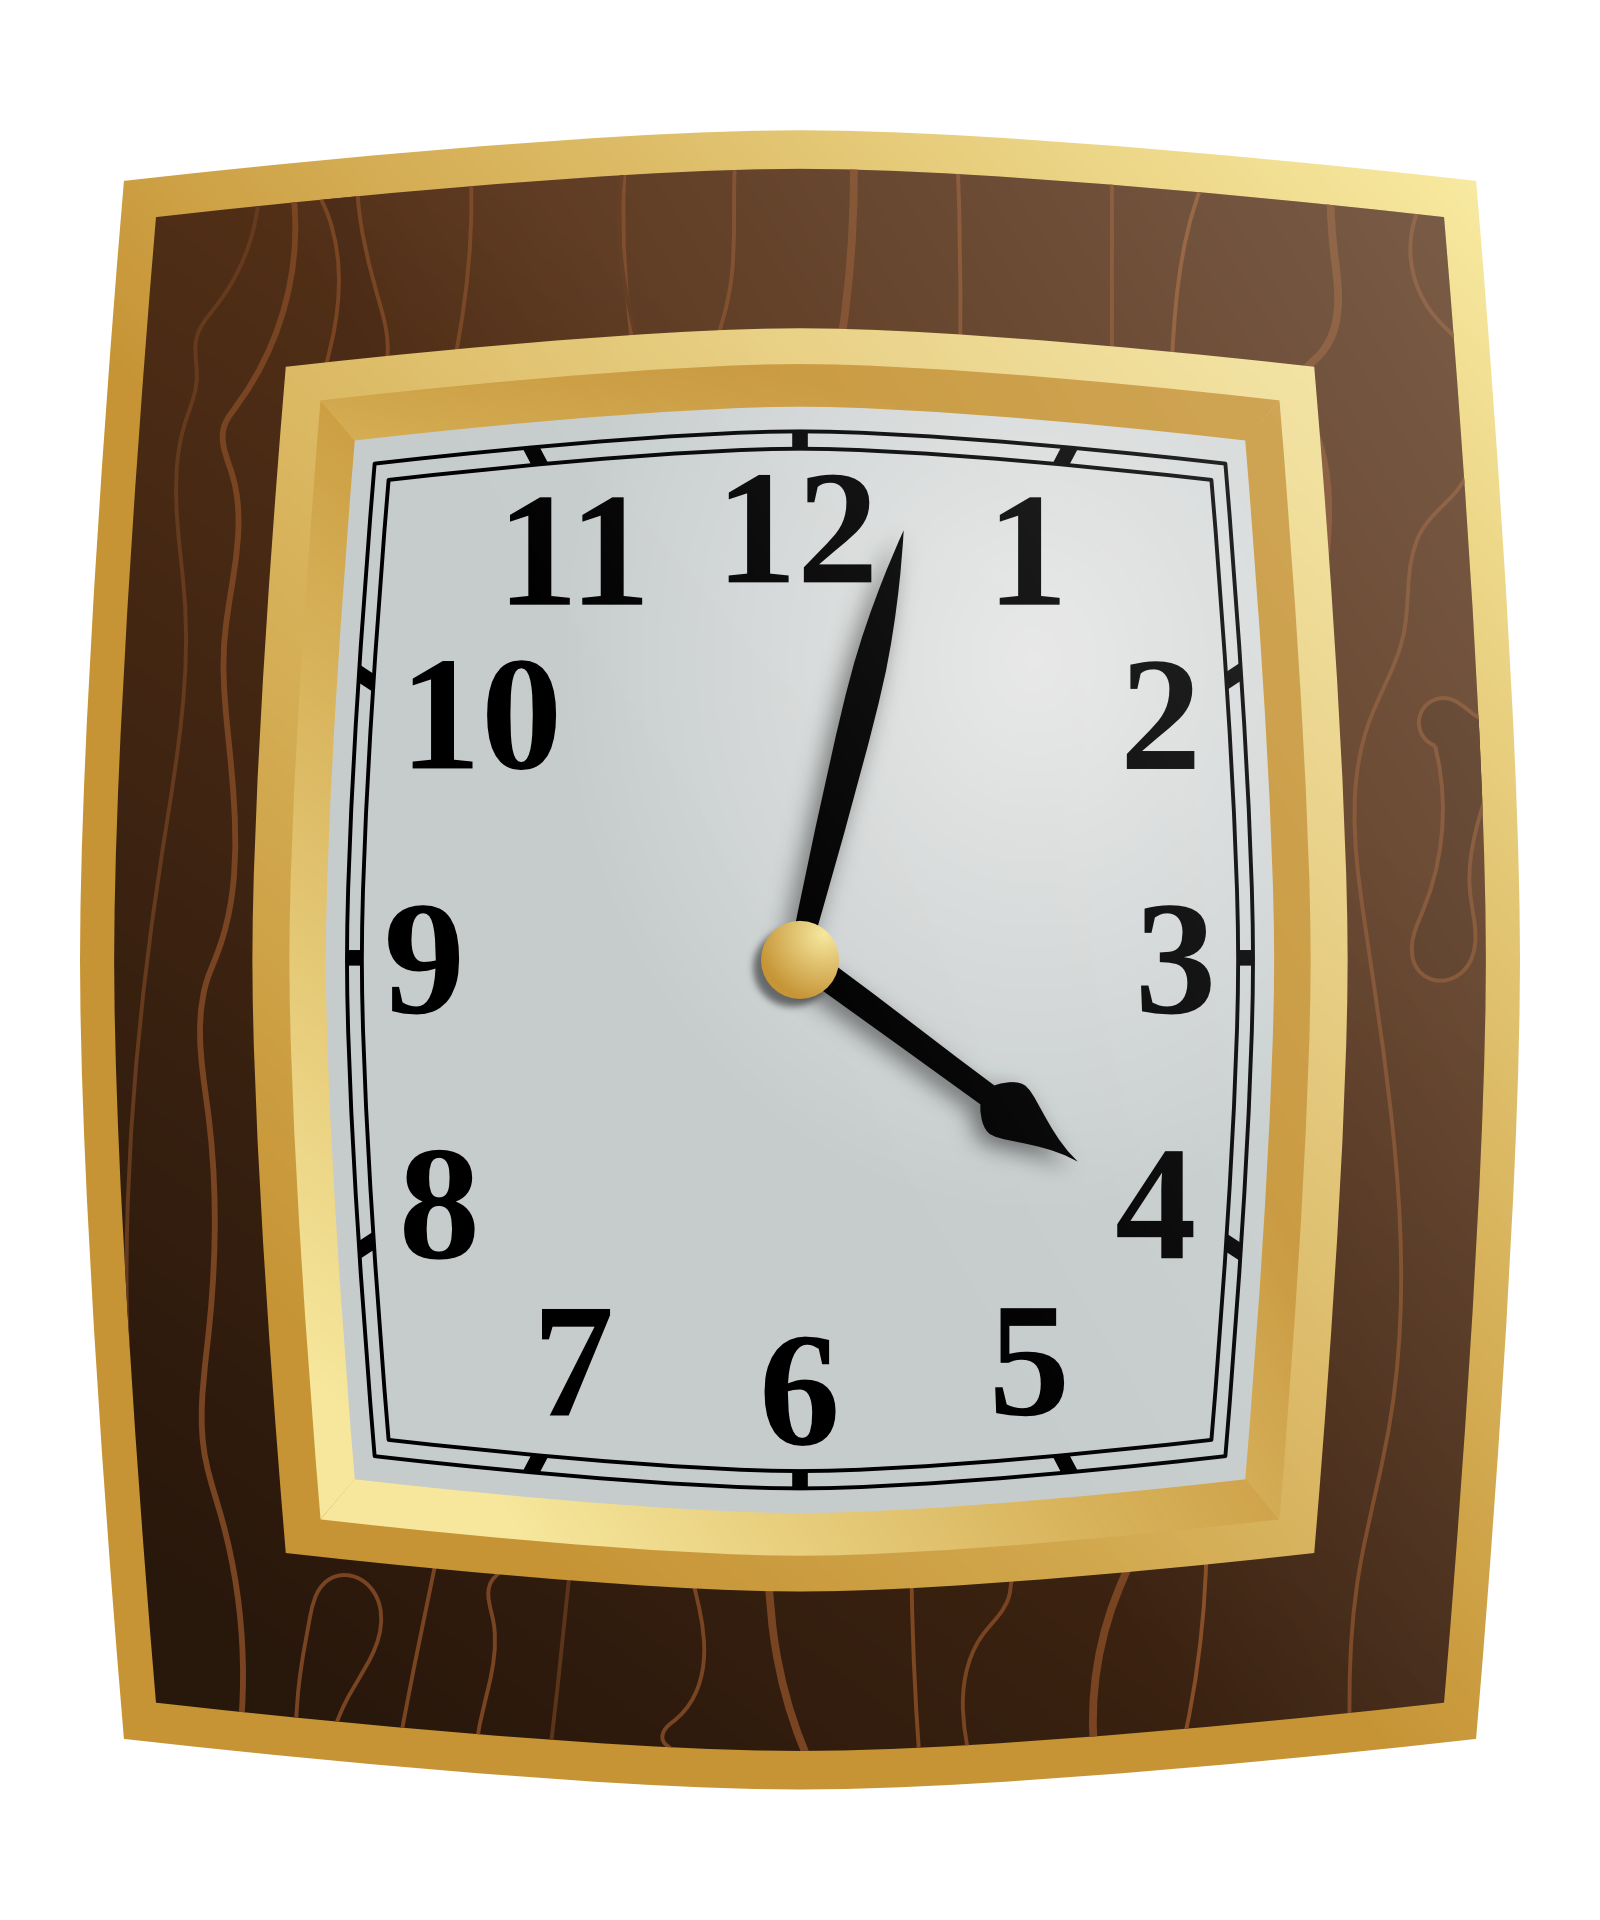 wall watch, clock png image 20639